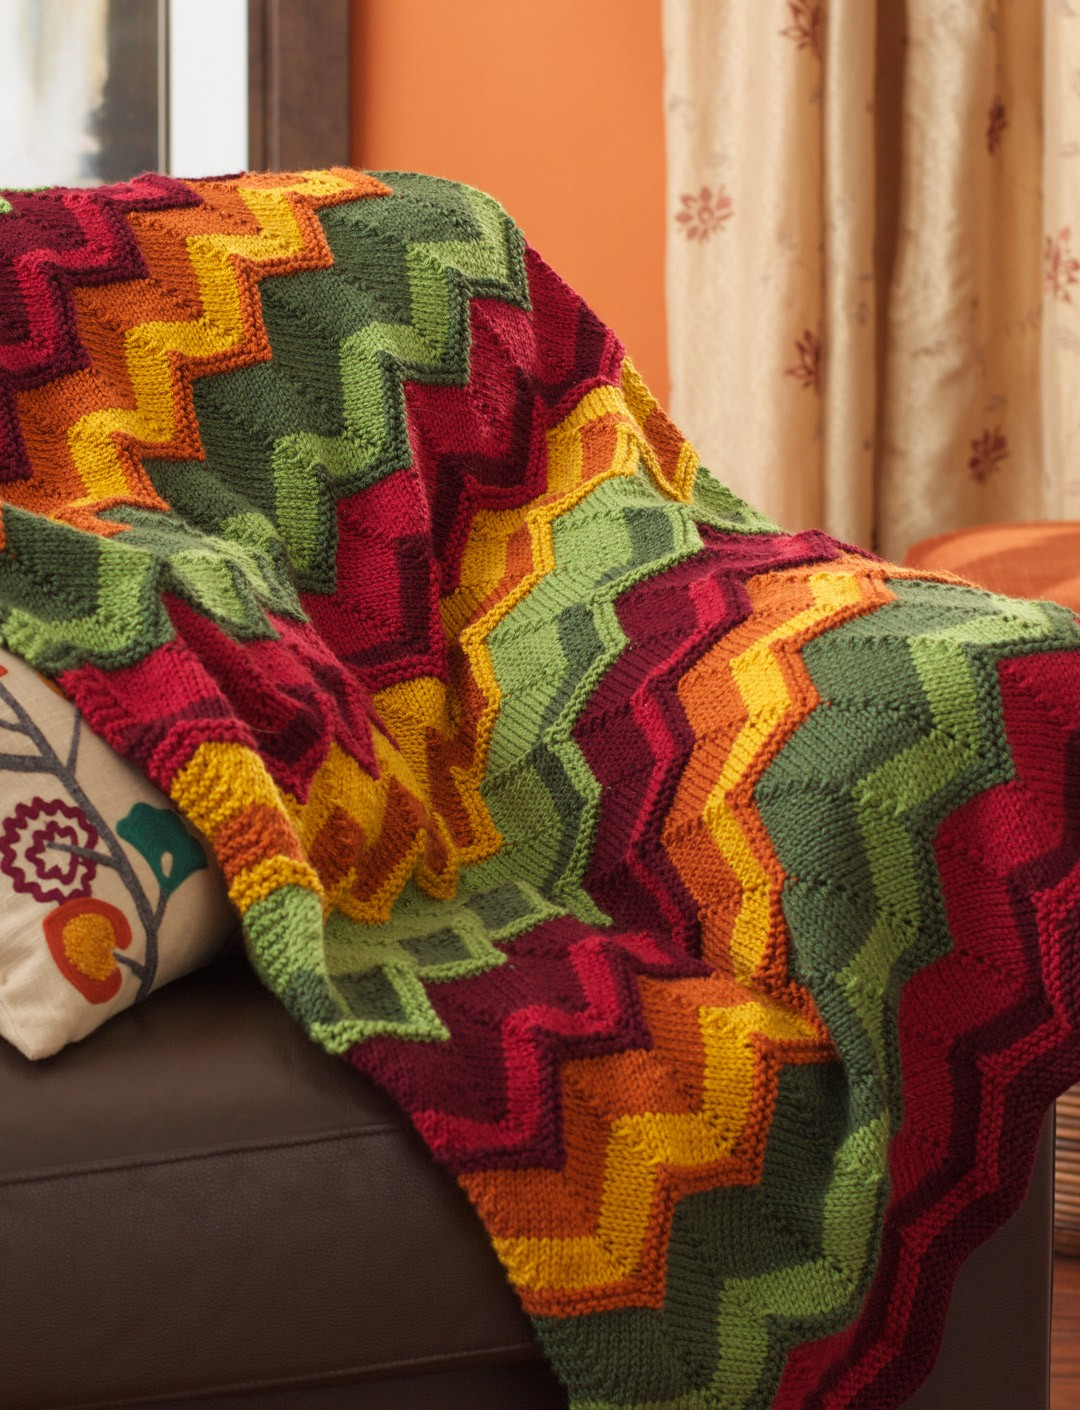 Patons Spicy Chevron Blanket, Knit Pattern Yarnspirations